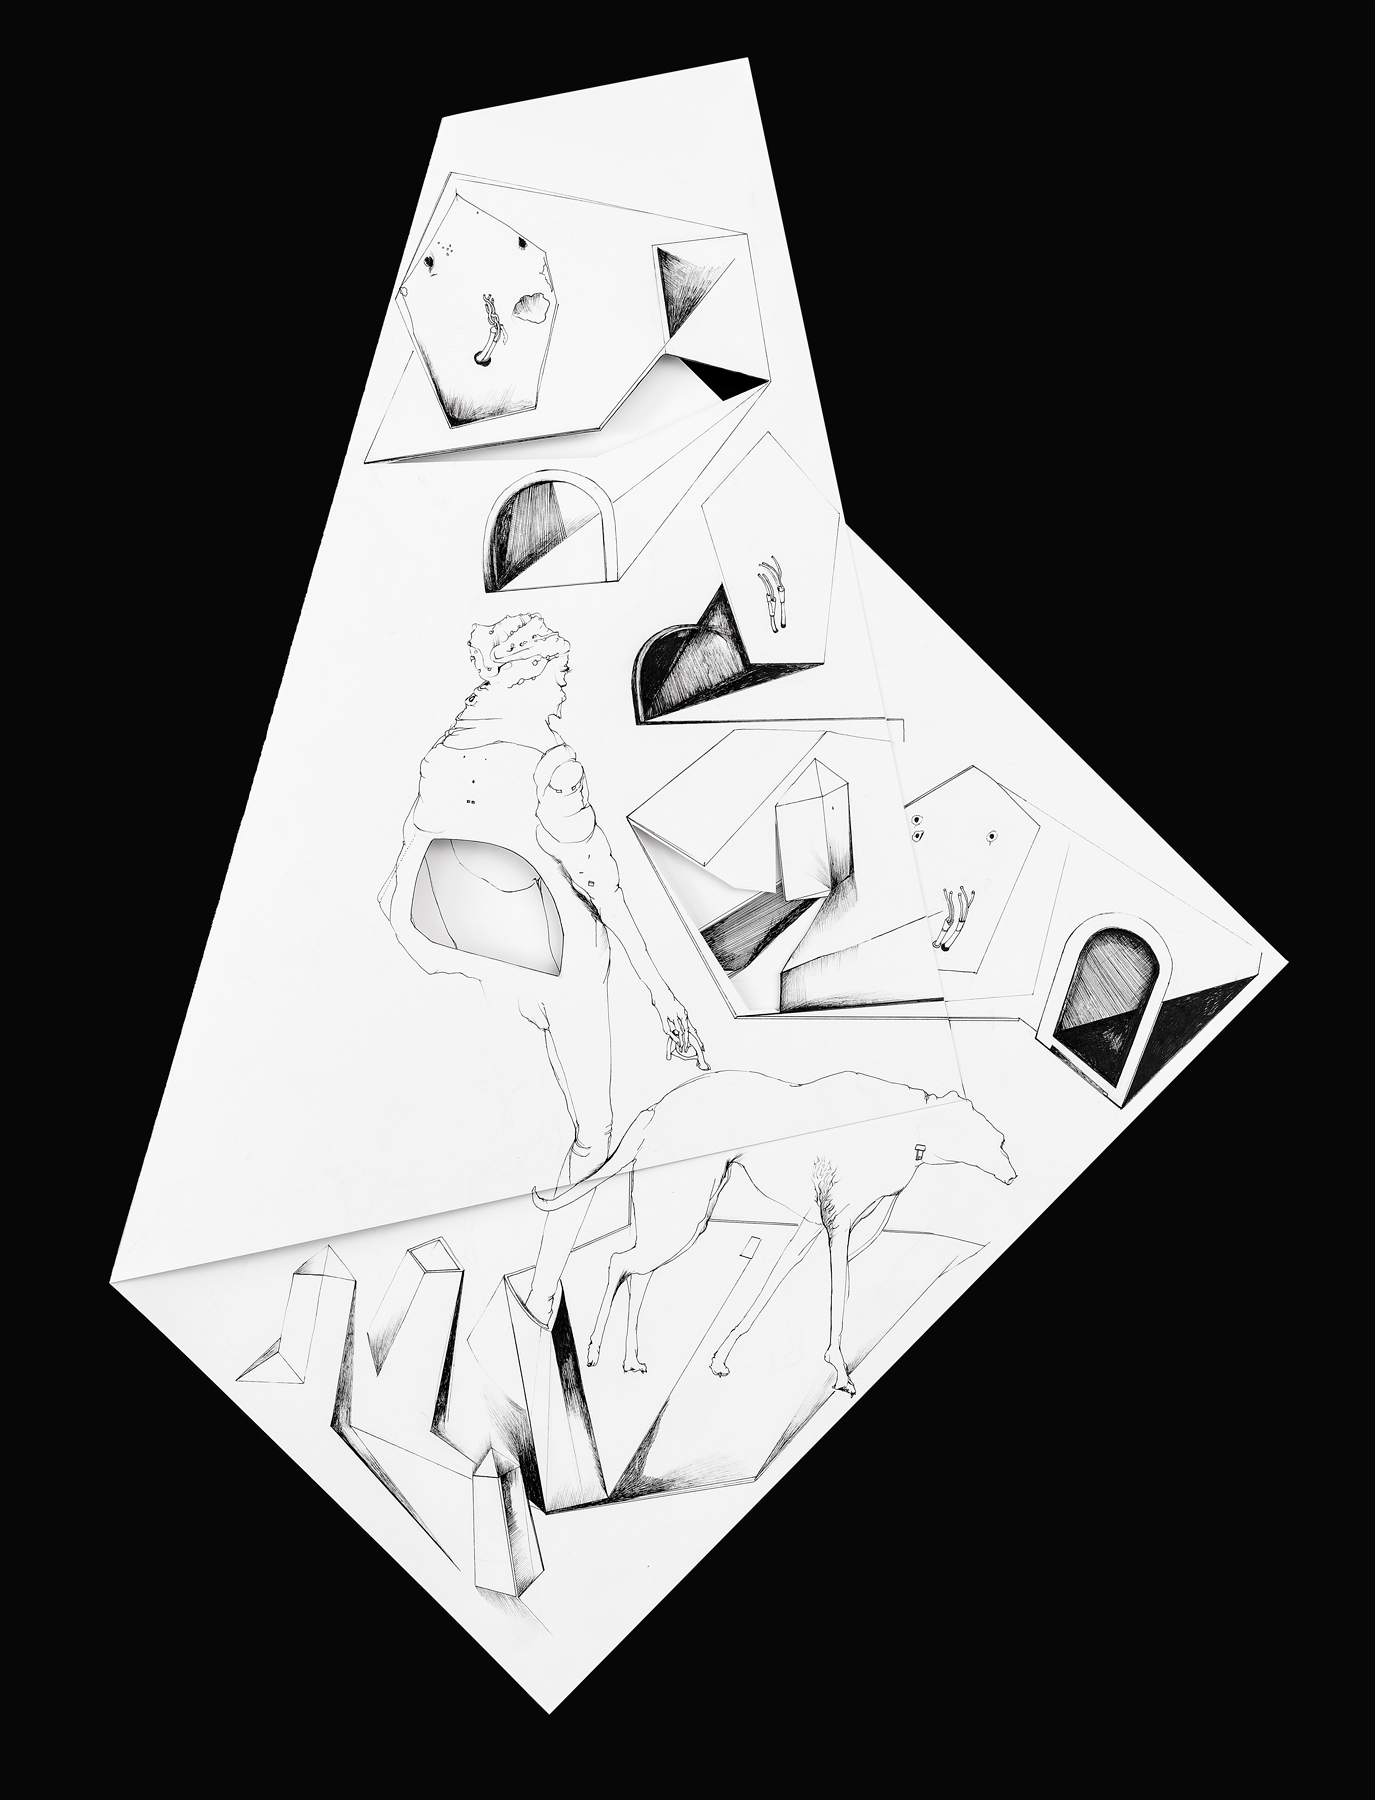 Nina Annabelle Märkl | Fragmented Fiction XI | Ink on folded paper, Cut - Outs | 50 x 38 cm | 2016